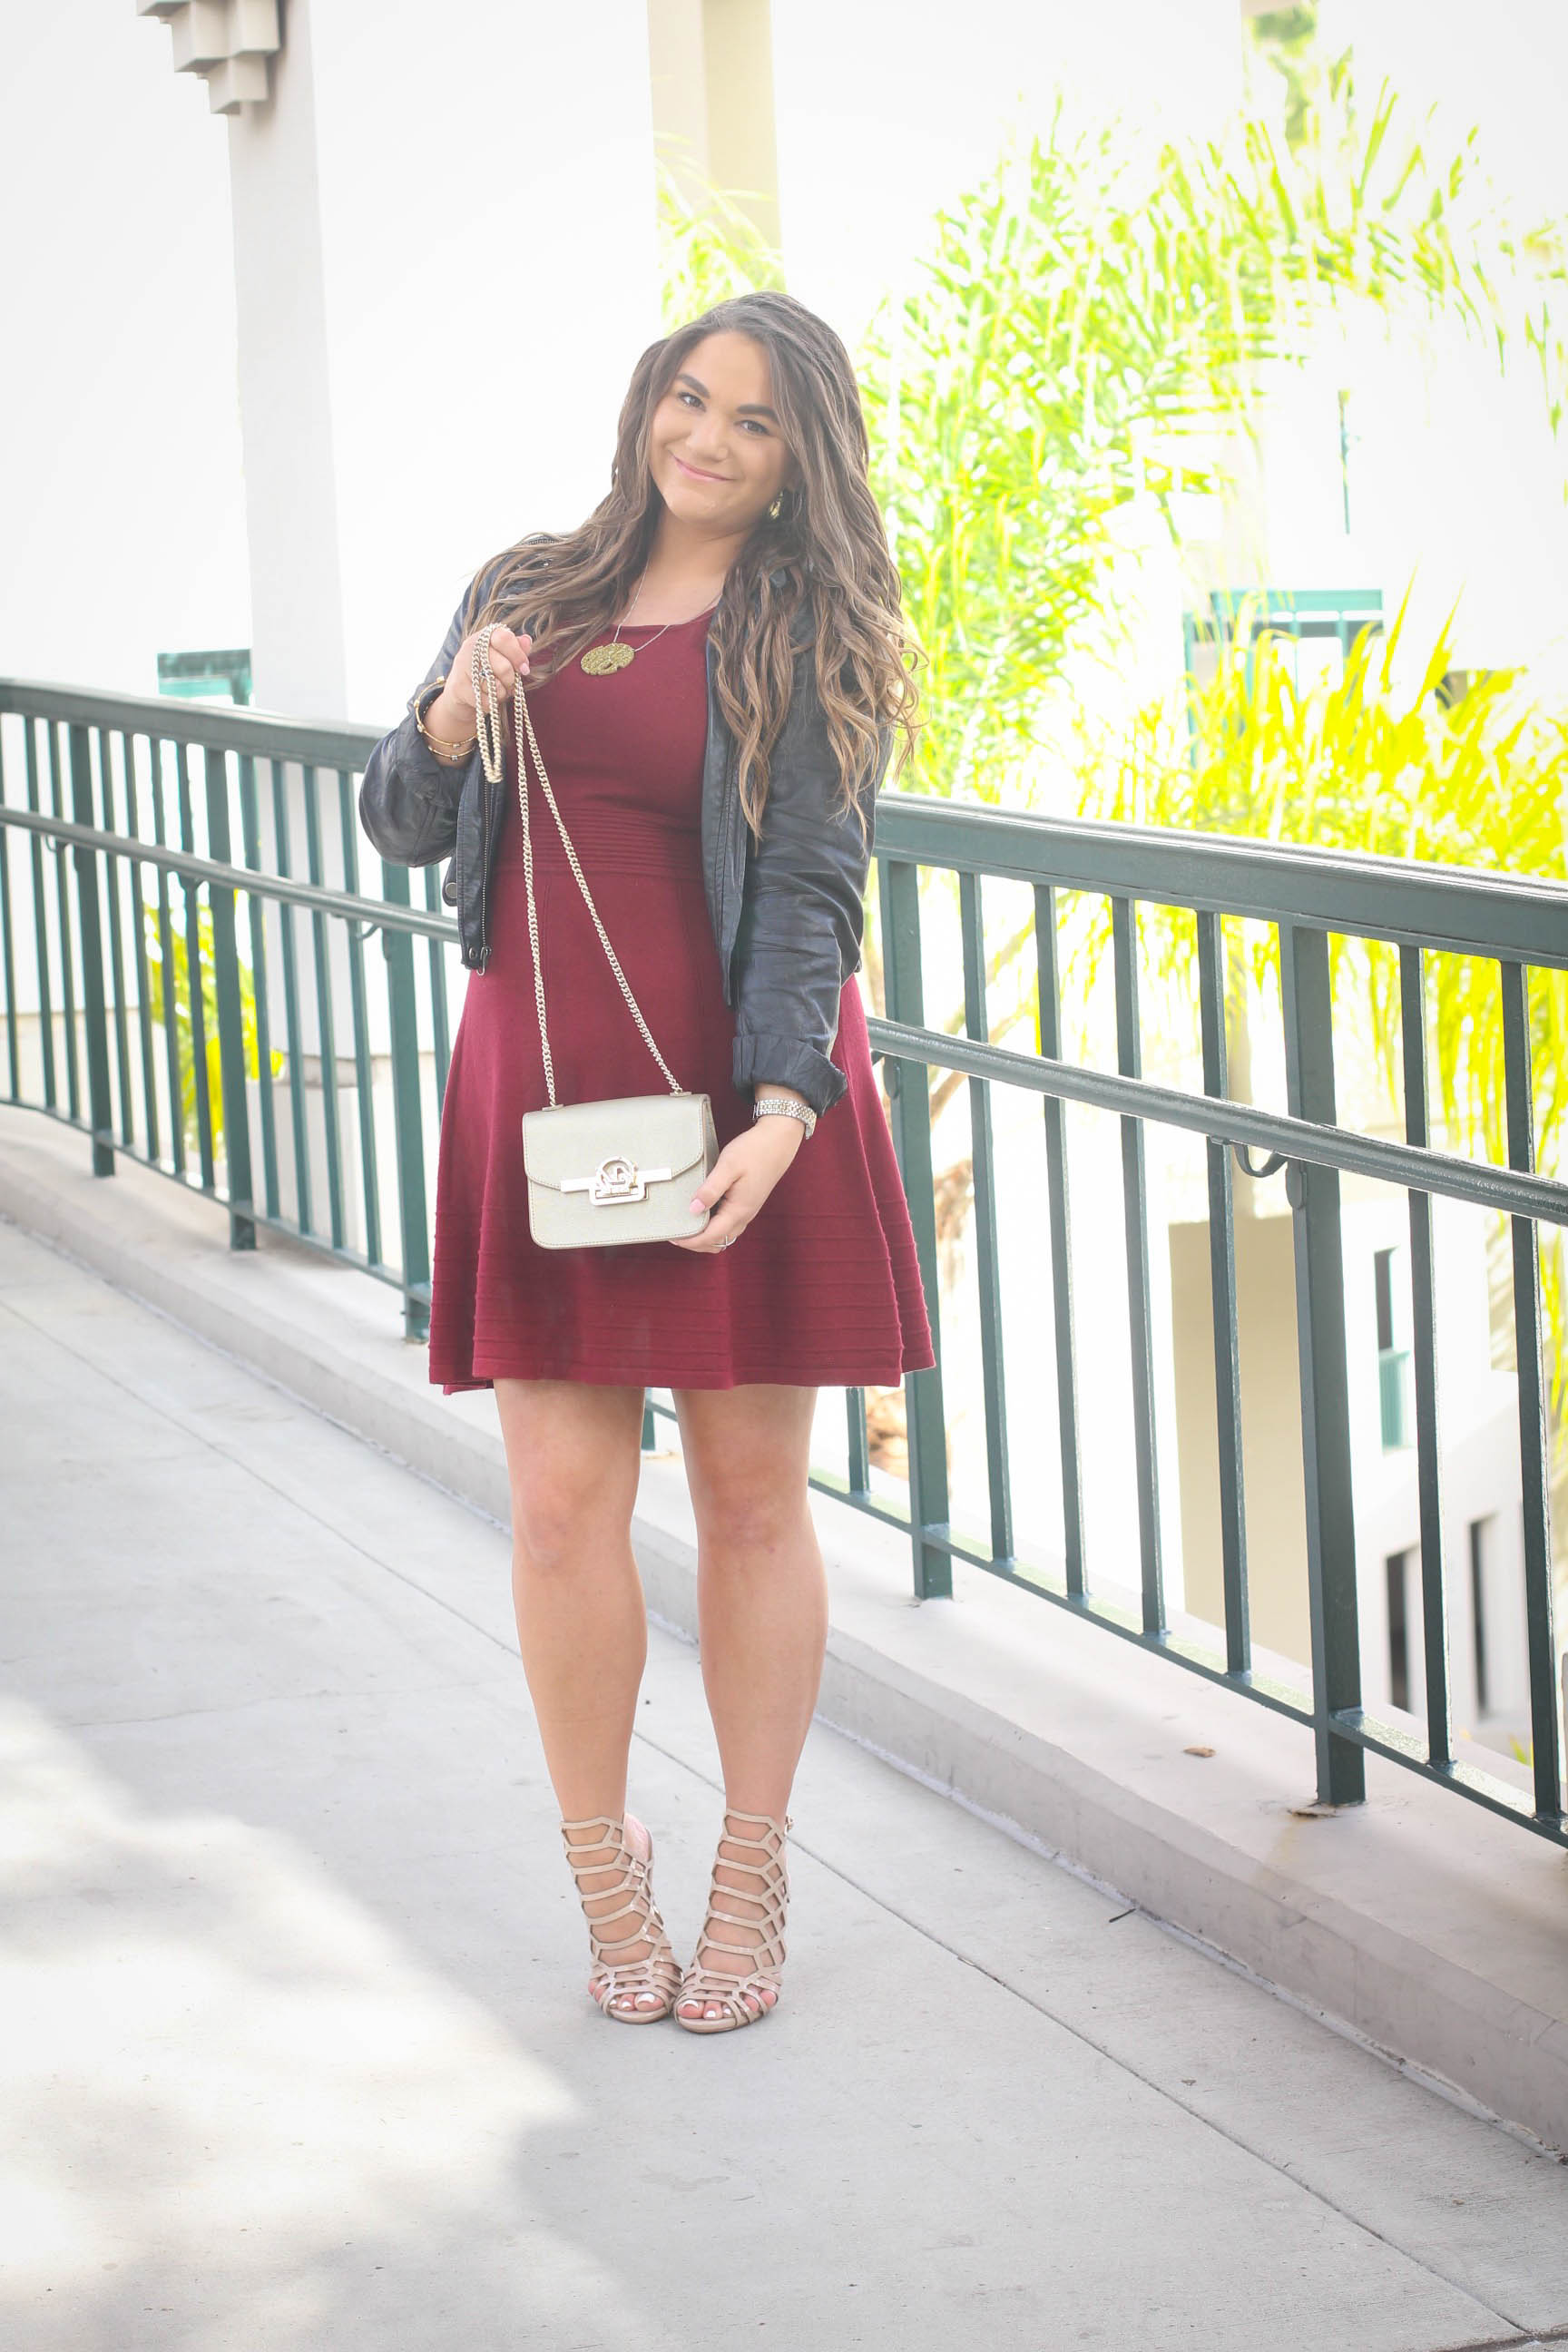 missyonmadison, sweater dress, how to style a sweater dress, how to style a moto jacket, moto jacket, maroon dress, maroon sweater dress, caged heels, nude gladiator heels, gold crossbody bag, gold bag, mezzanotte bag, nude heels, nude caged heels, holiday dress guide, what to wear for the holidays, christmas outfit ideas, melissa tierney, sweater dress,